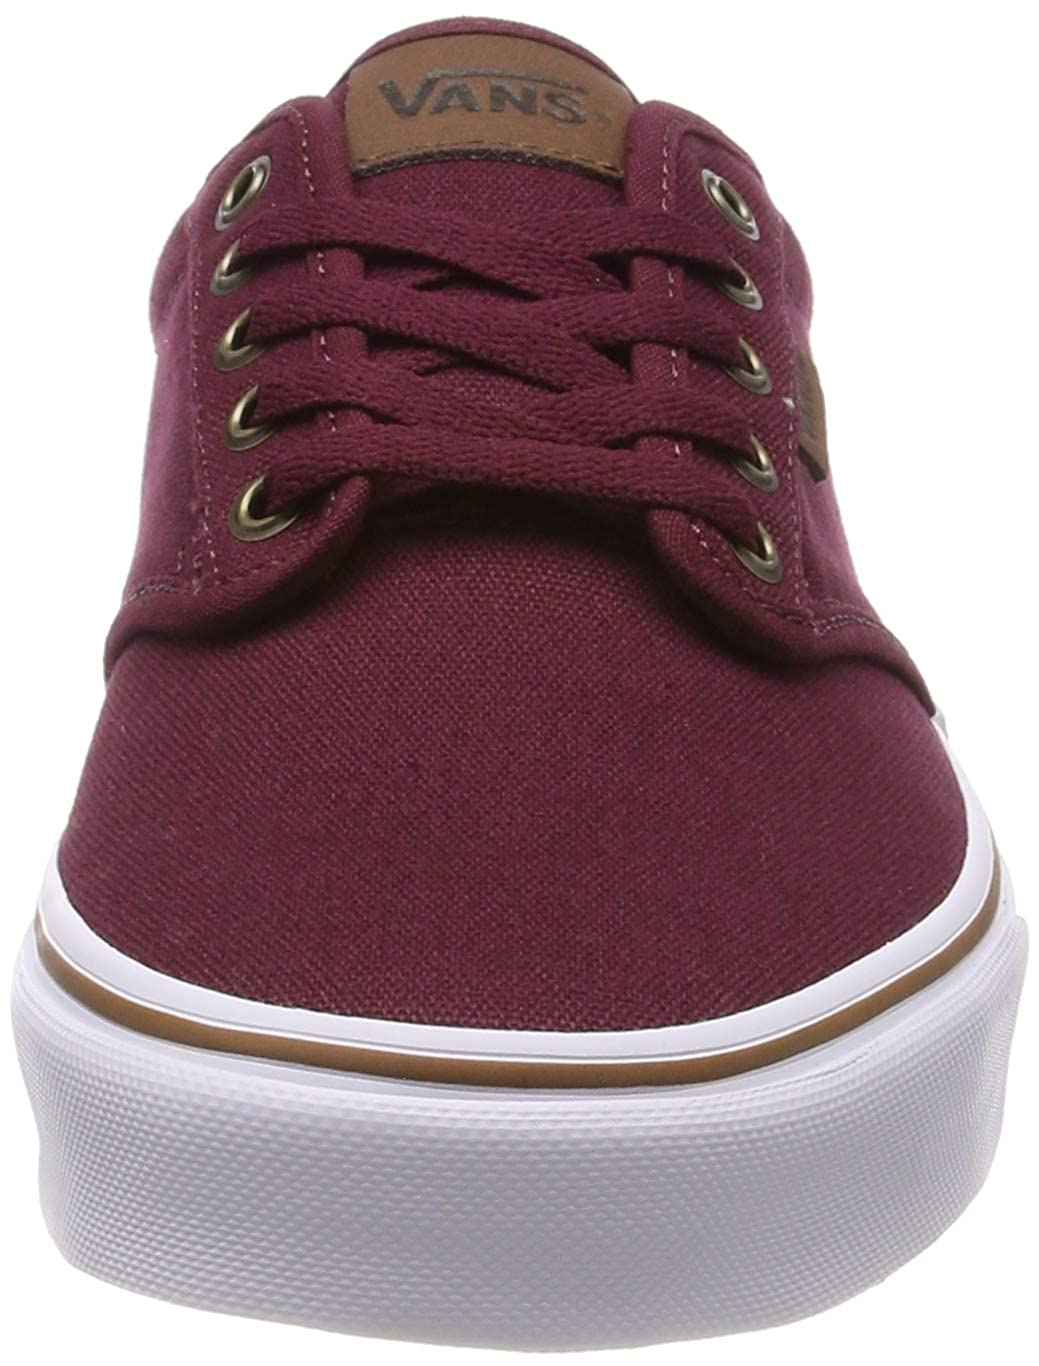 Vans Herren Atwood Atwood Atwood Canvas Turnschuhe  42a24e